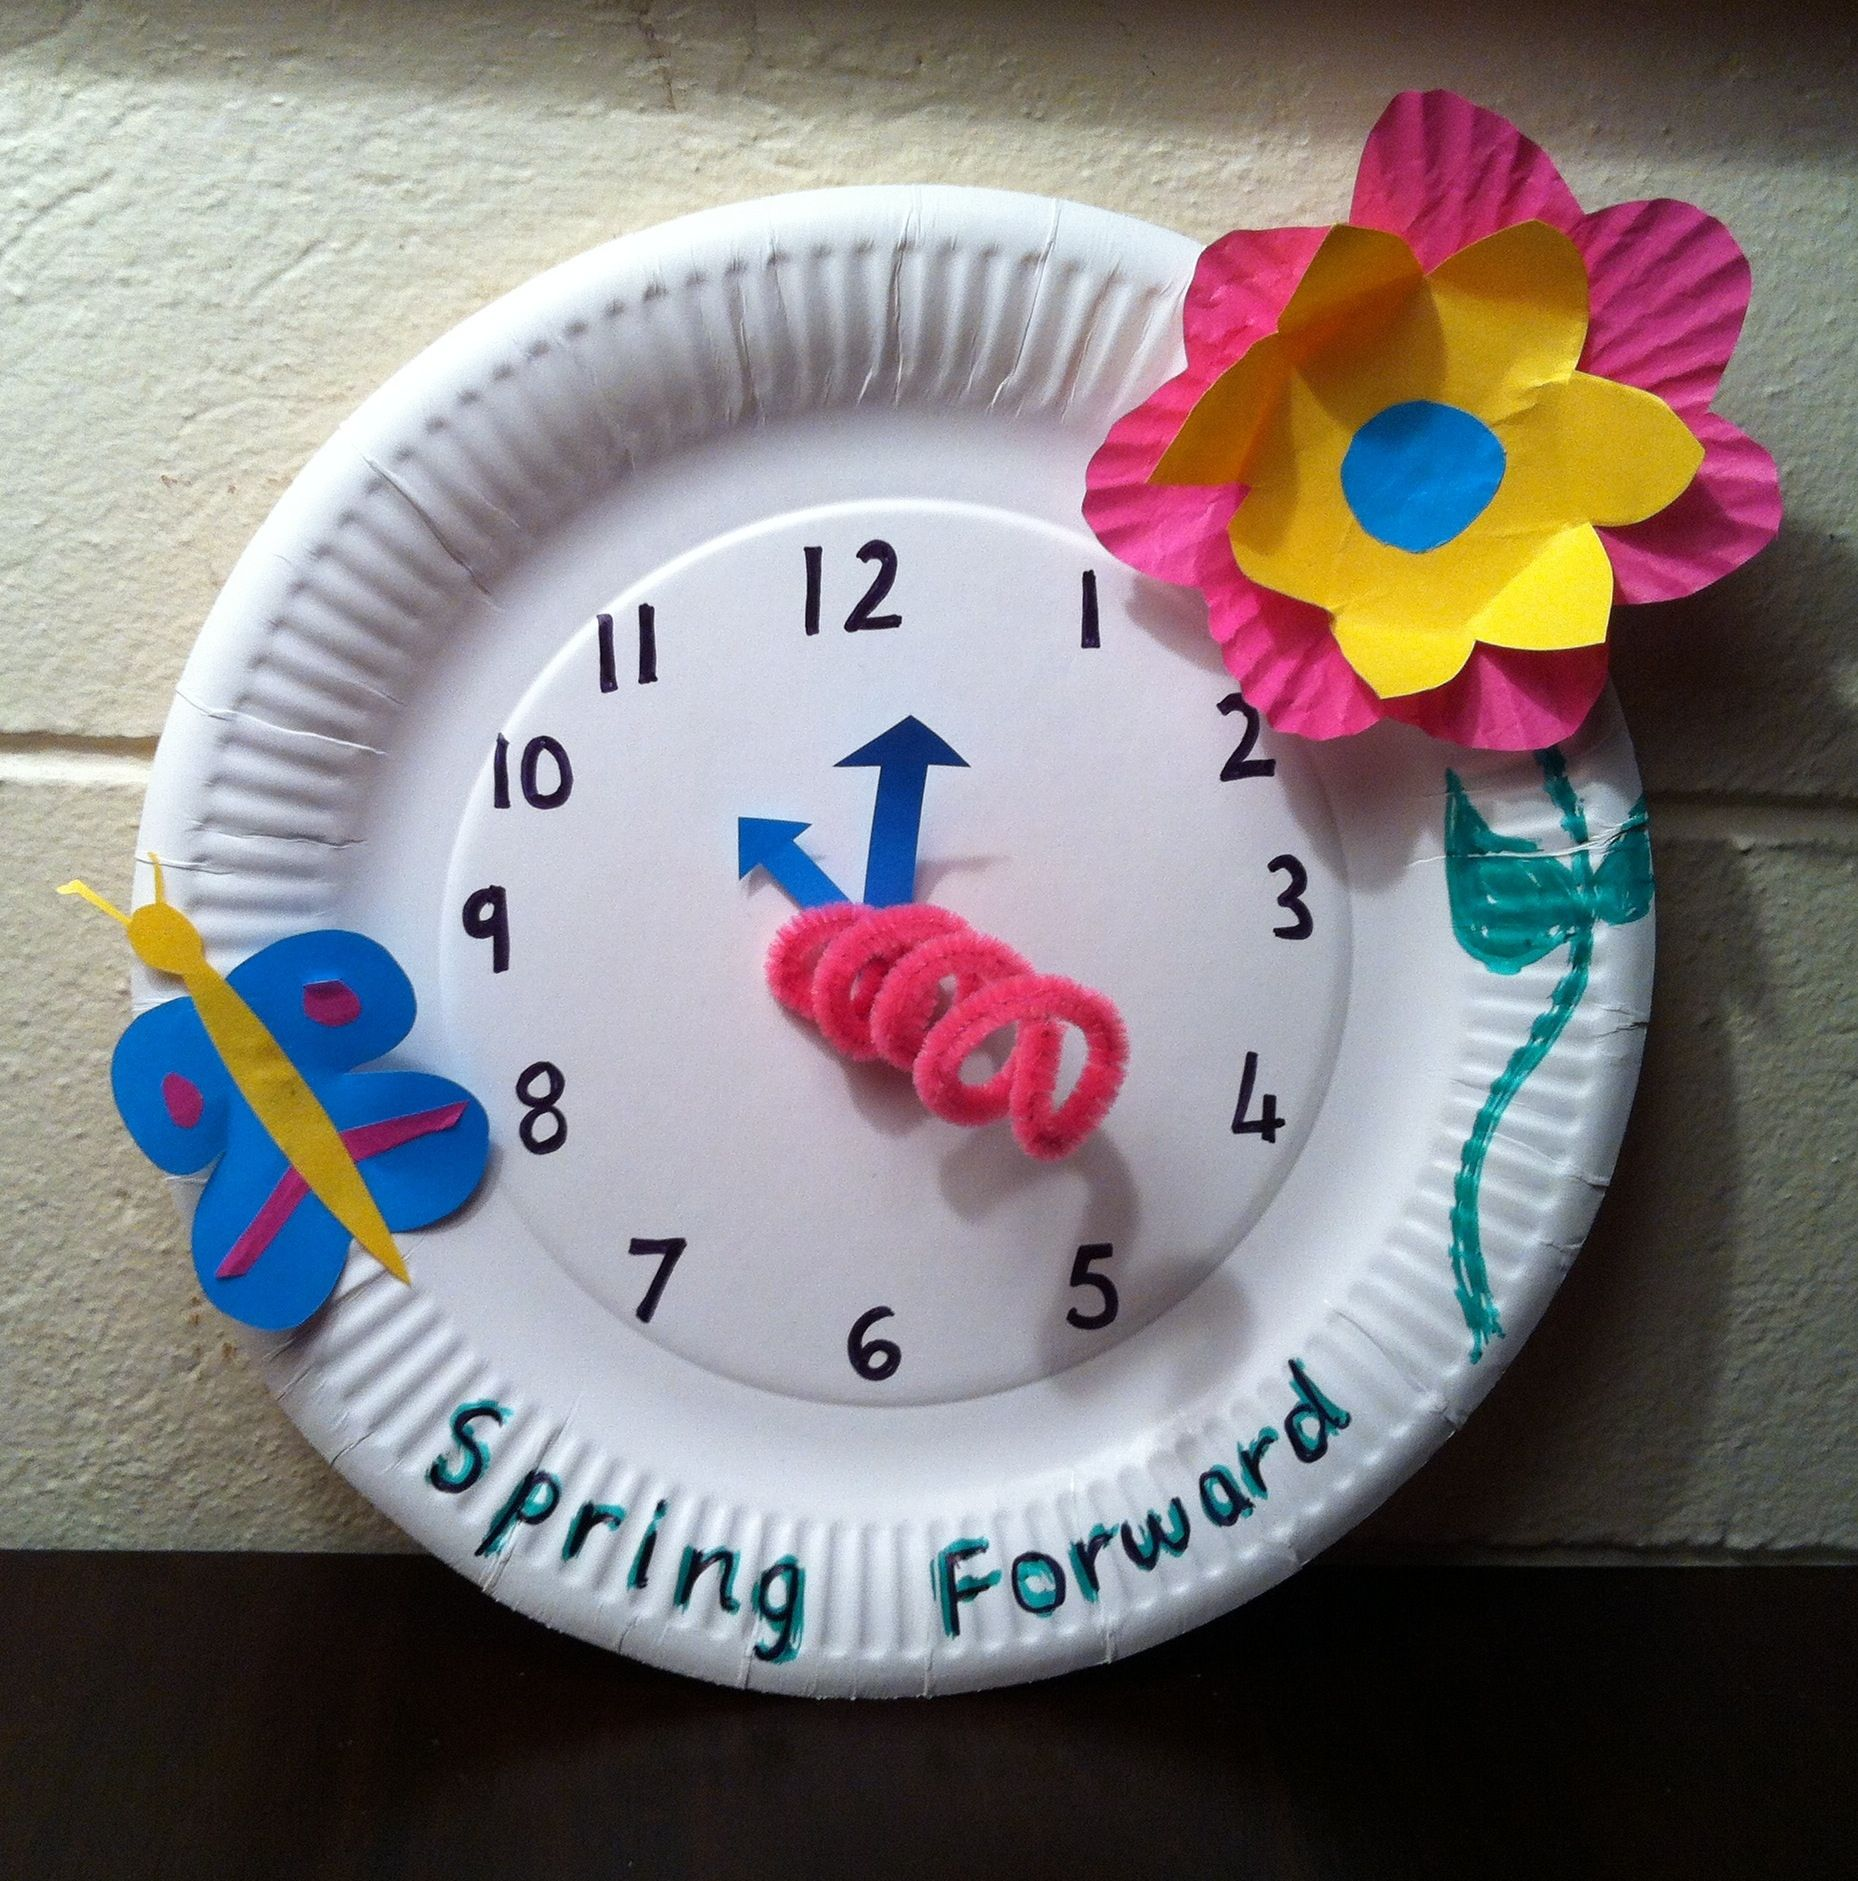 Craft clock faces craft clock faces craft clock faces spring forward craft daylight savings kicked